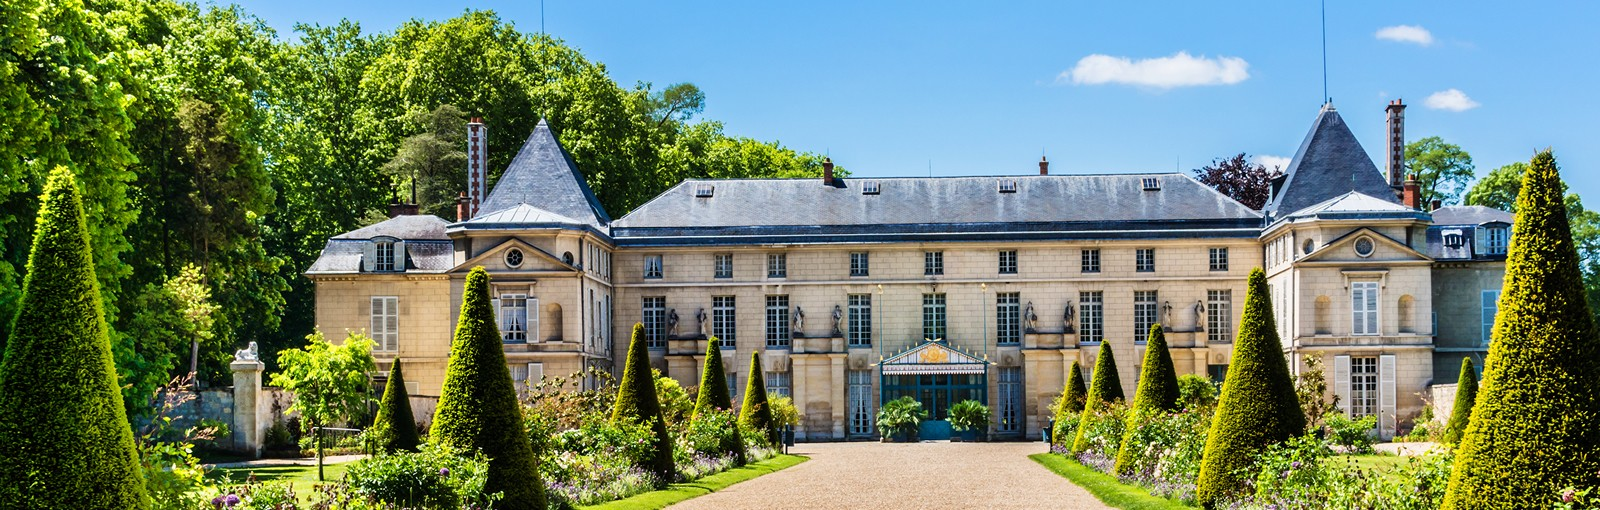 Tours Malmaison - Half days - Day tours from Paris